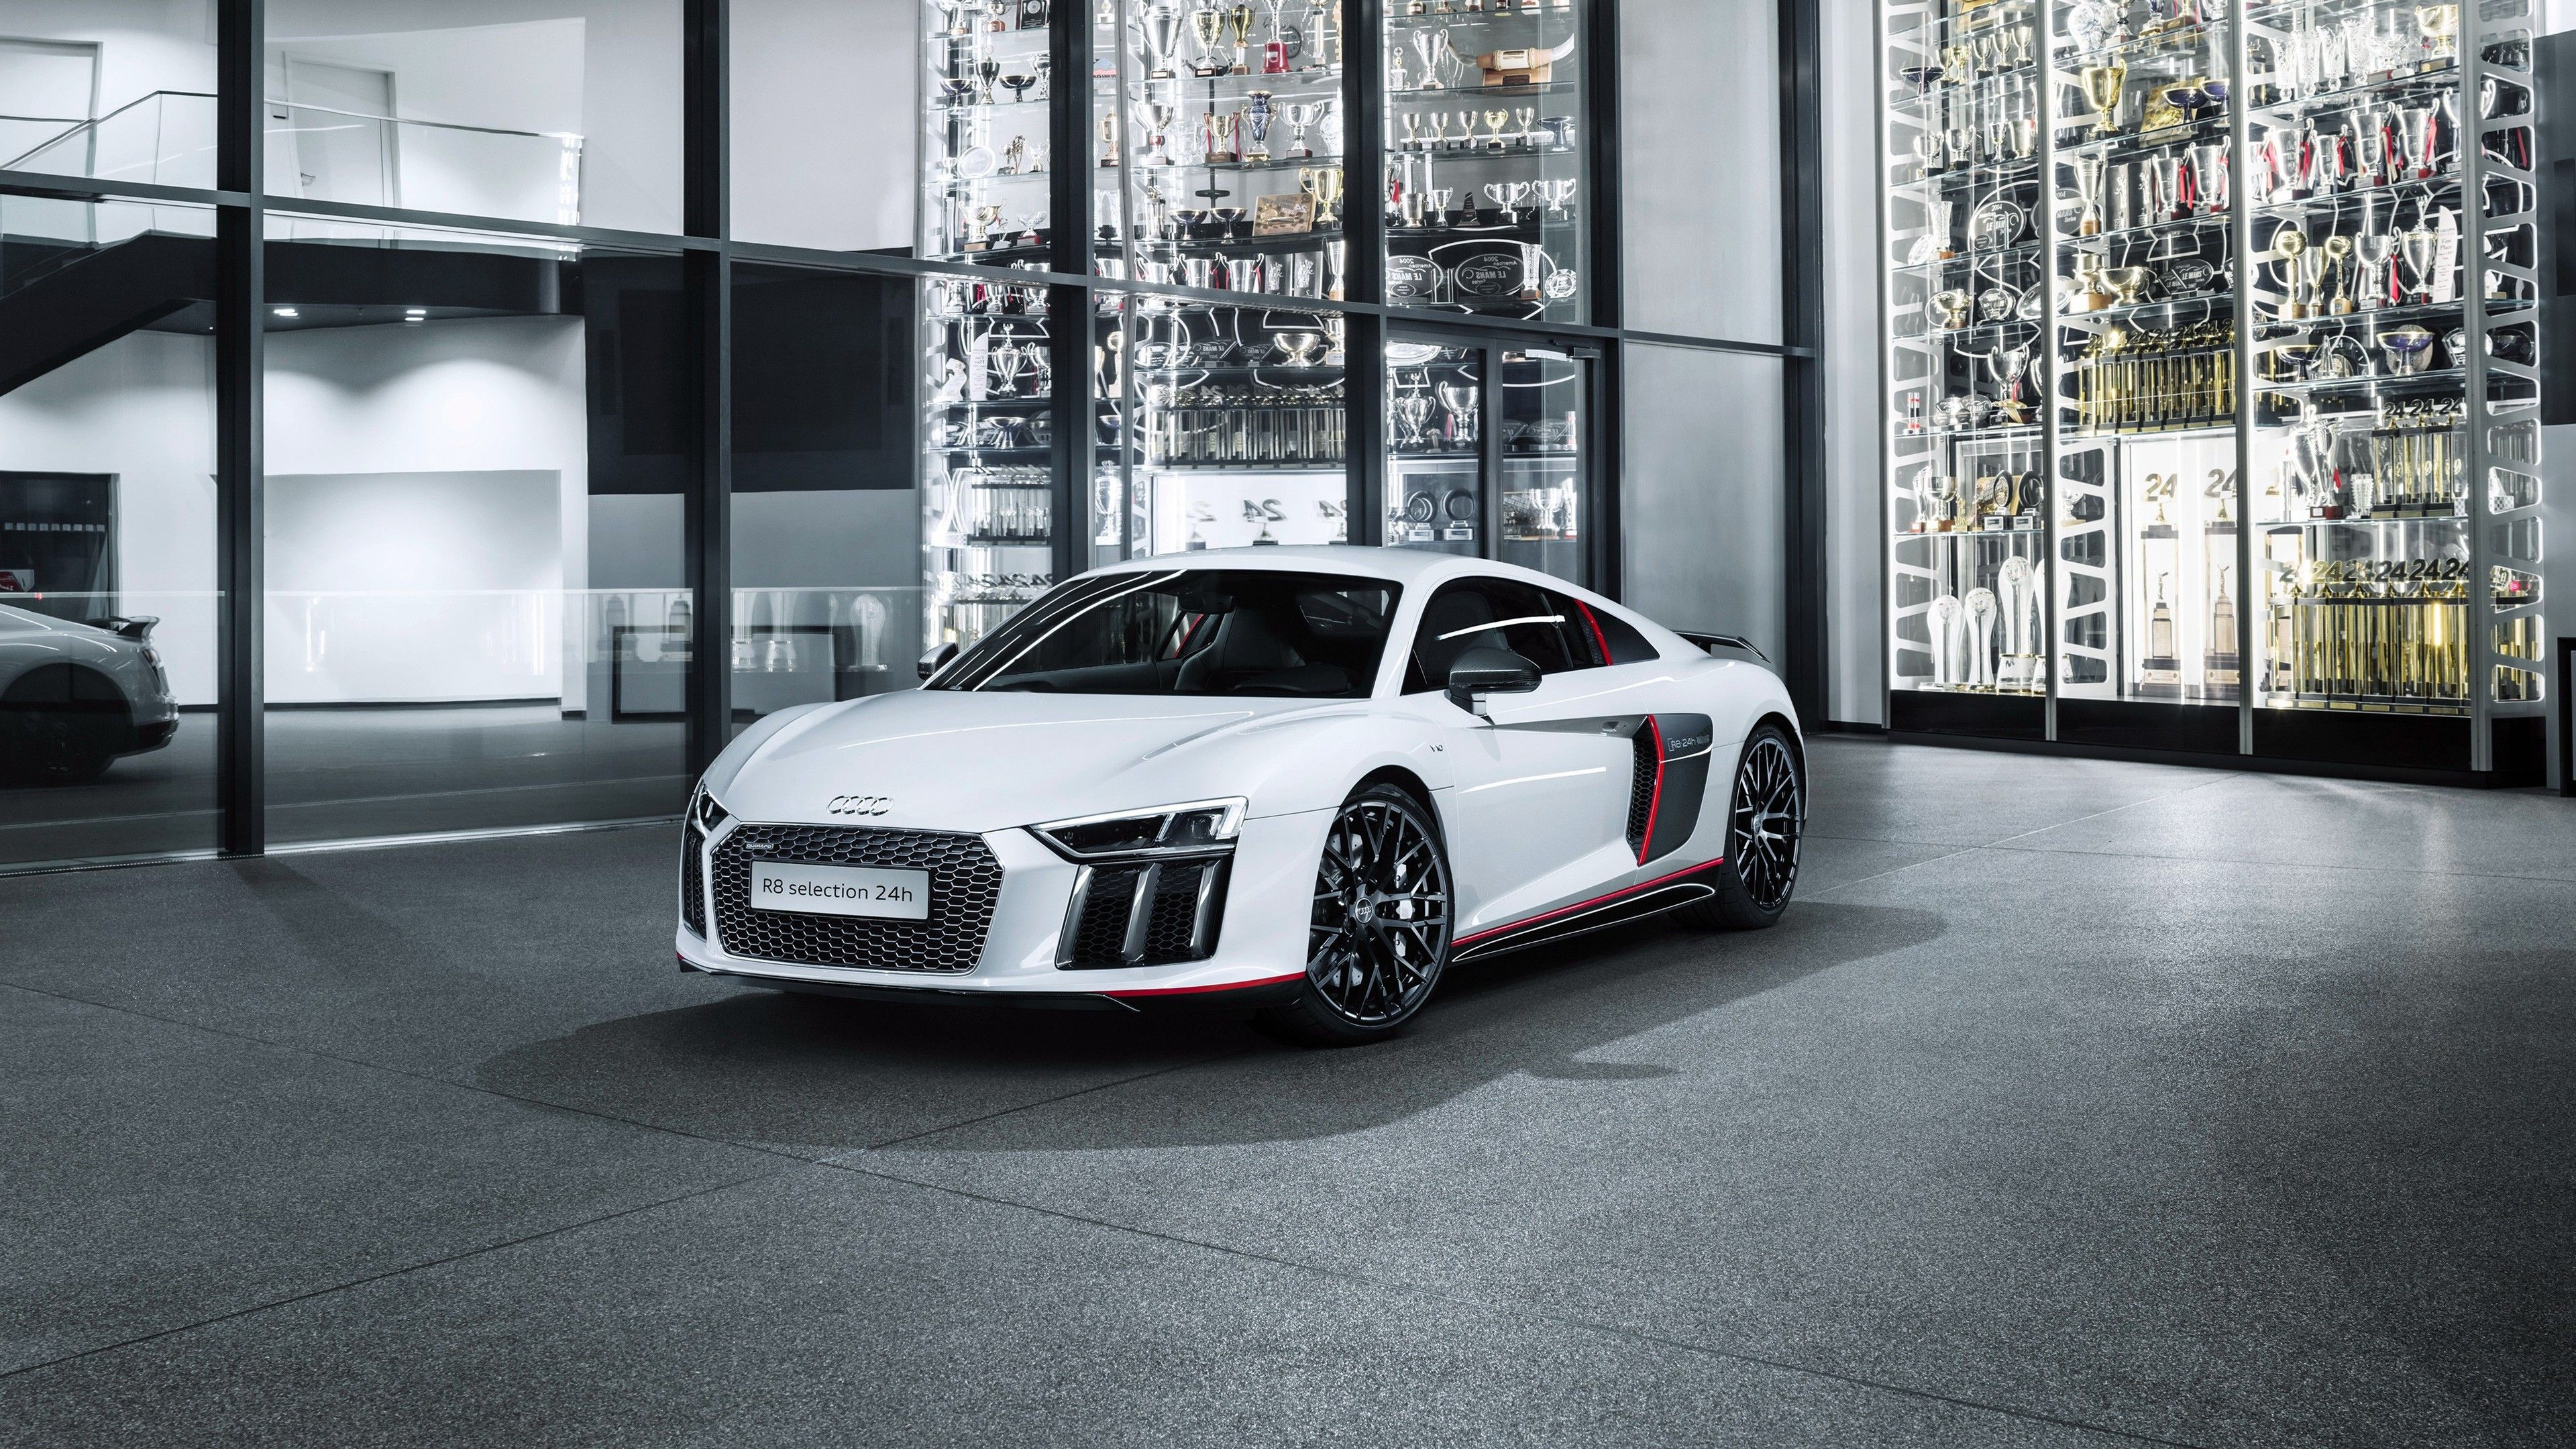 Audi R8 Spyder 2018 Wallpaper ·①